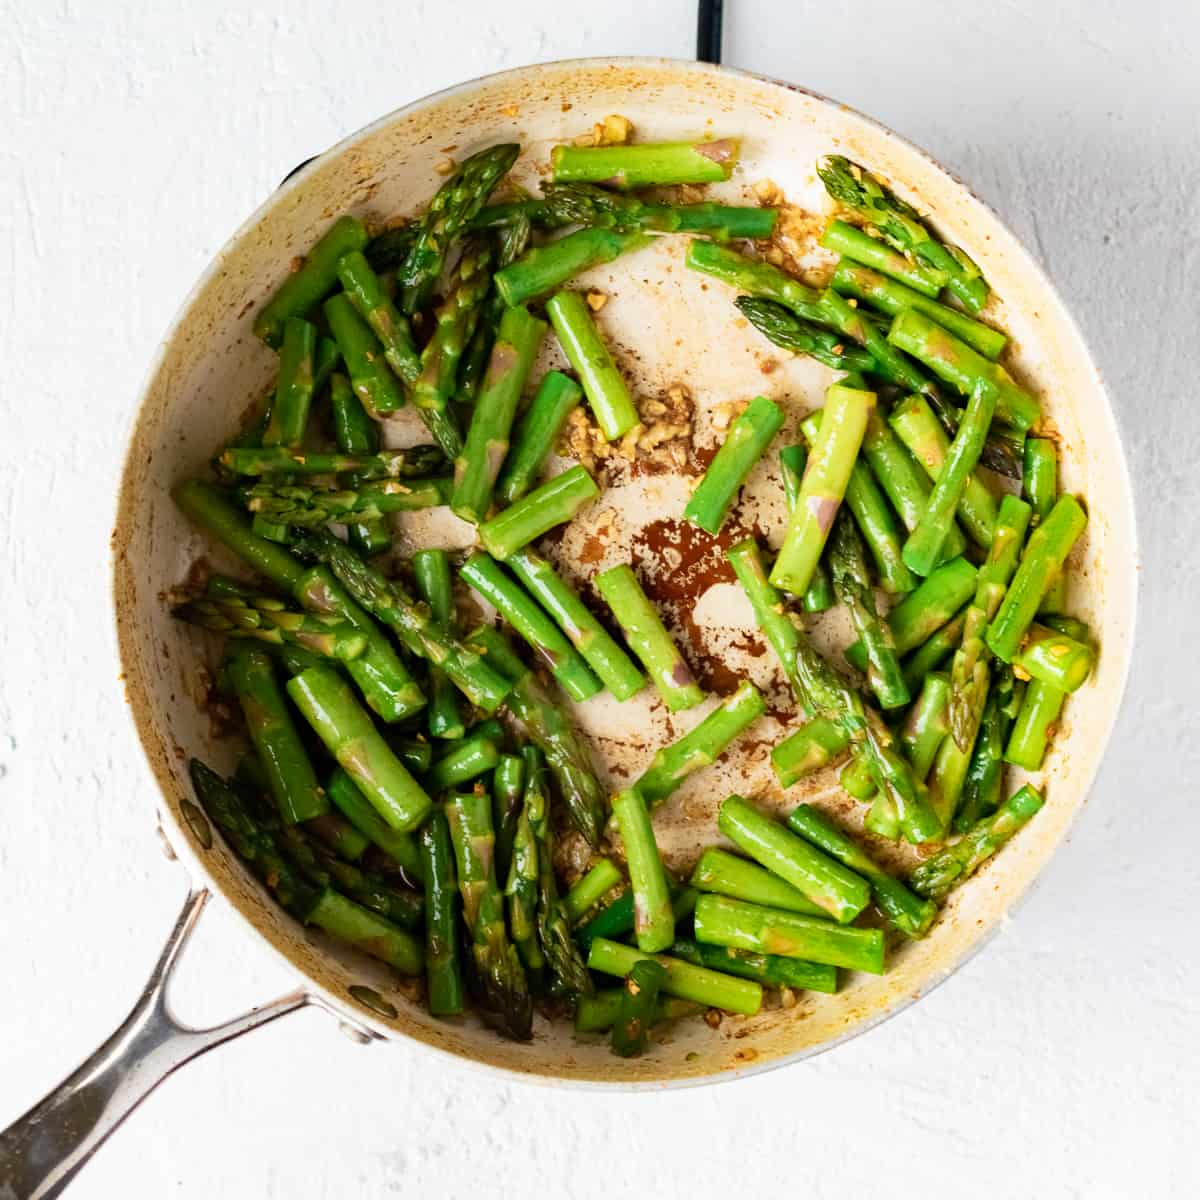 Cut green asparagus sautéing in a pan with minced garlic and butter.